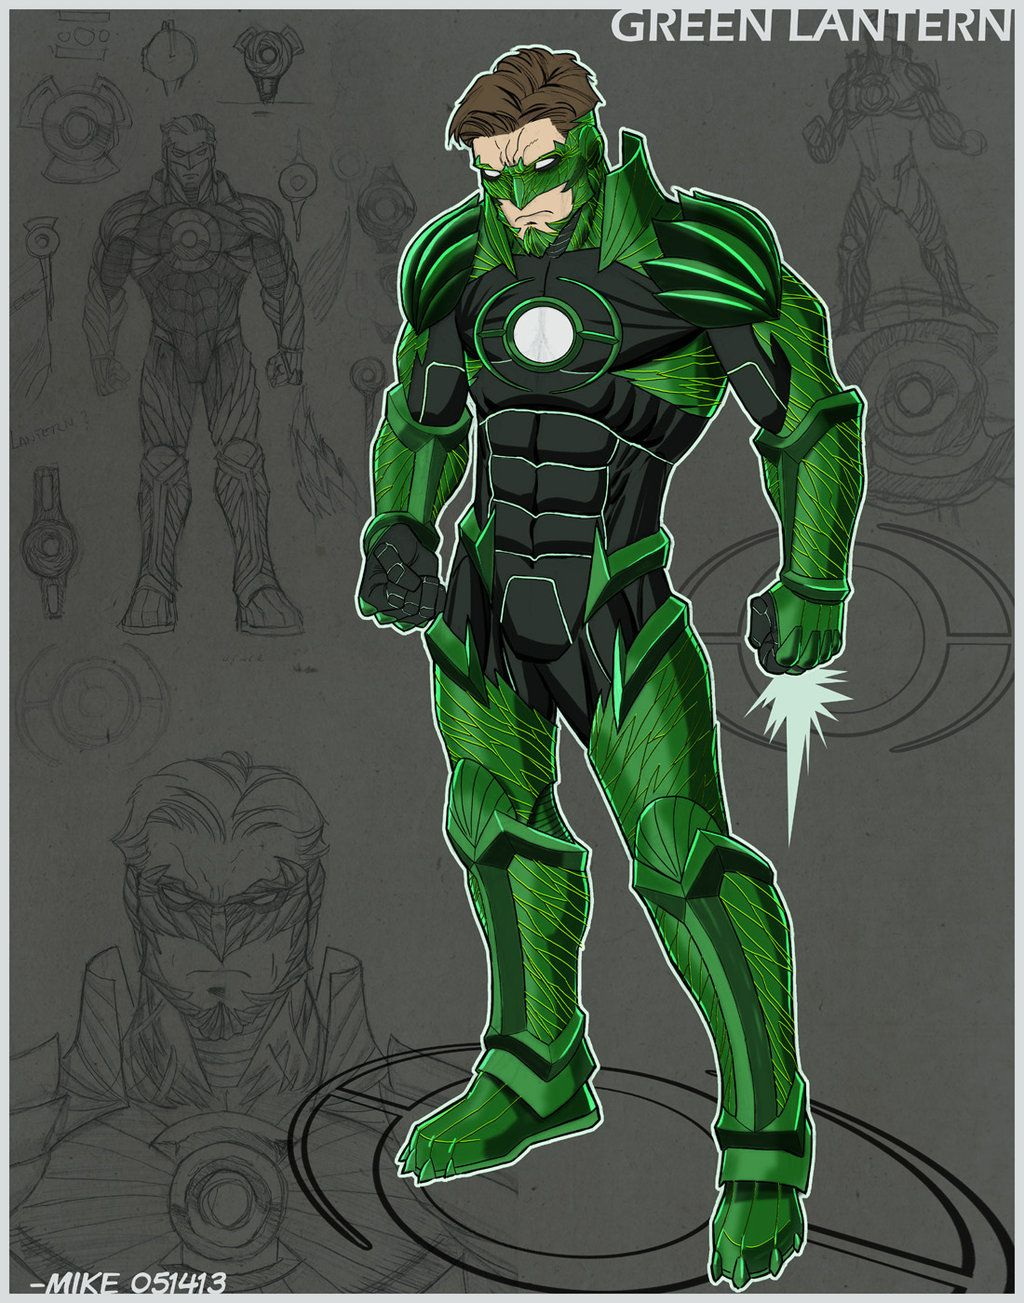 Project Rooftop Green Lantern By Mikedimayuga On Deviantart Green Lantern Cosplay Green Lantern Green Lantern Corps